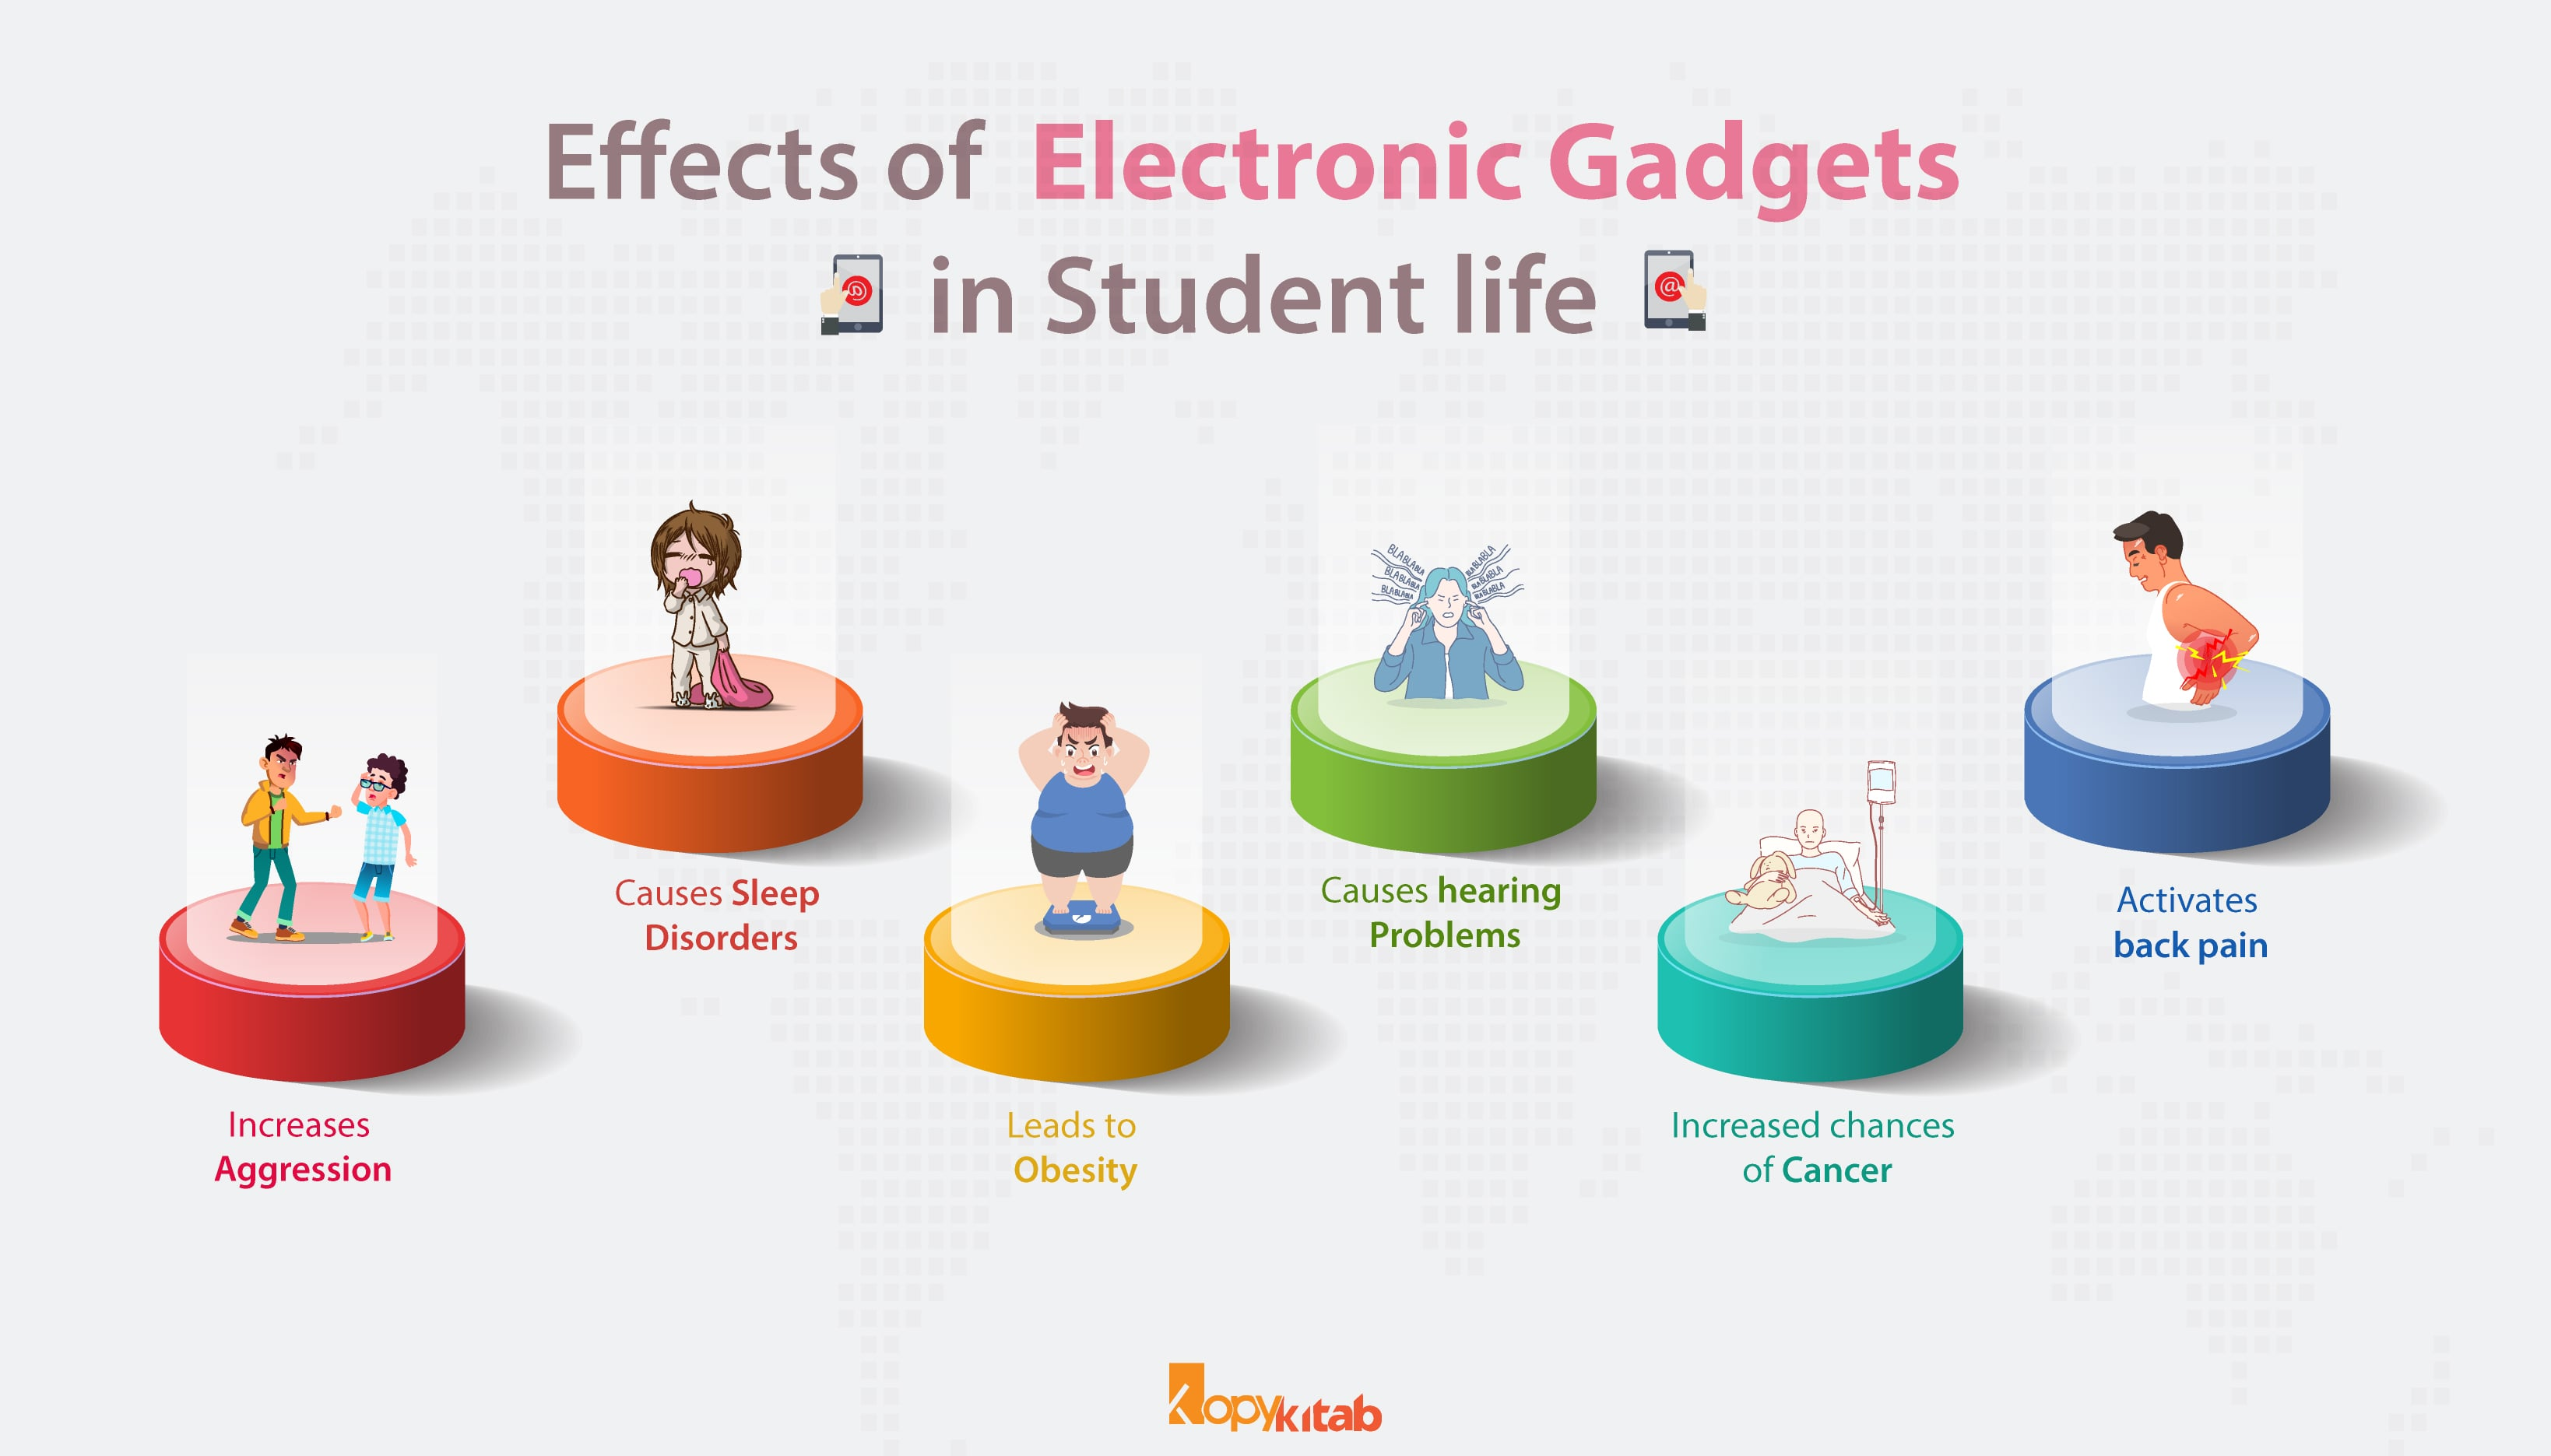 Effects of Electronic Gadgets